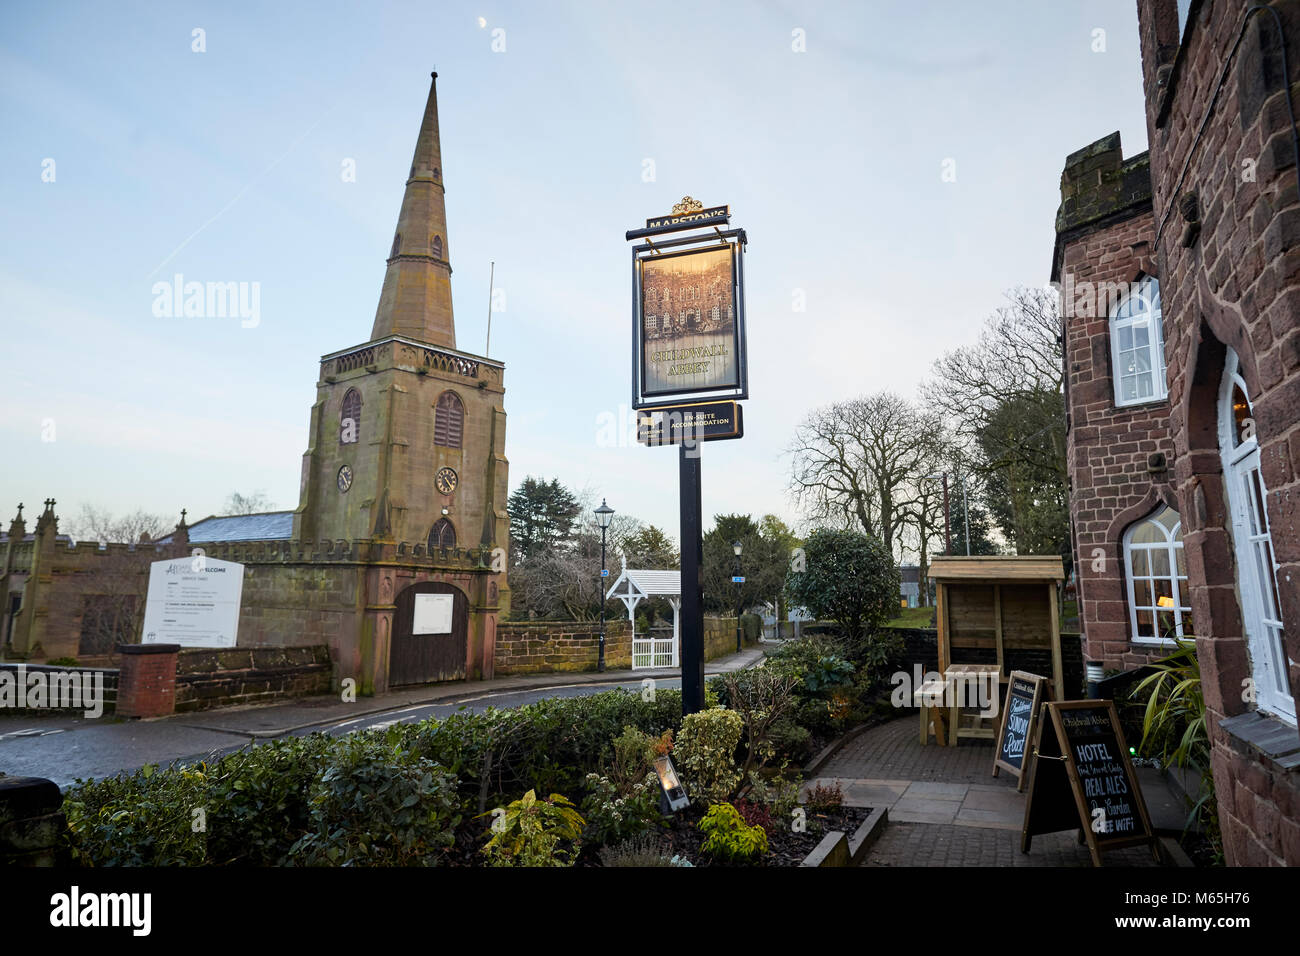 Newley refurbished Marston's Inns Childwall Abbey Hotel and Pub in Liverpool. - Stock Image